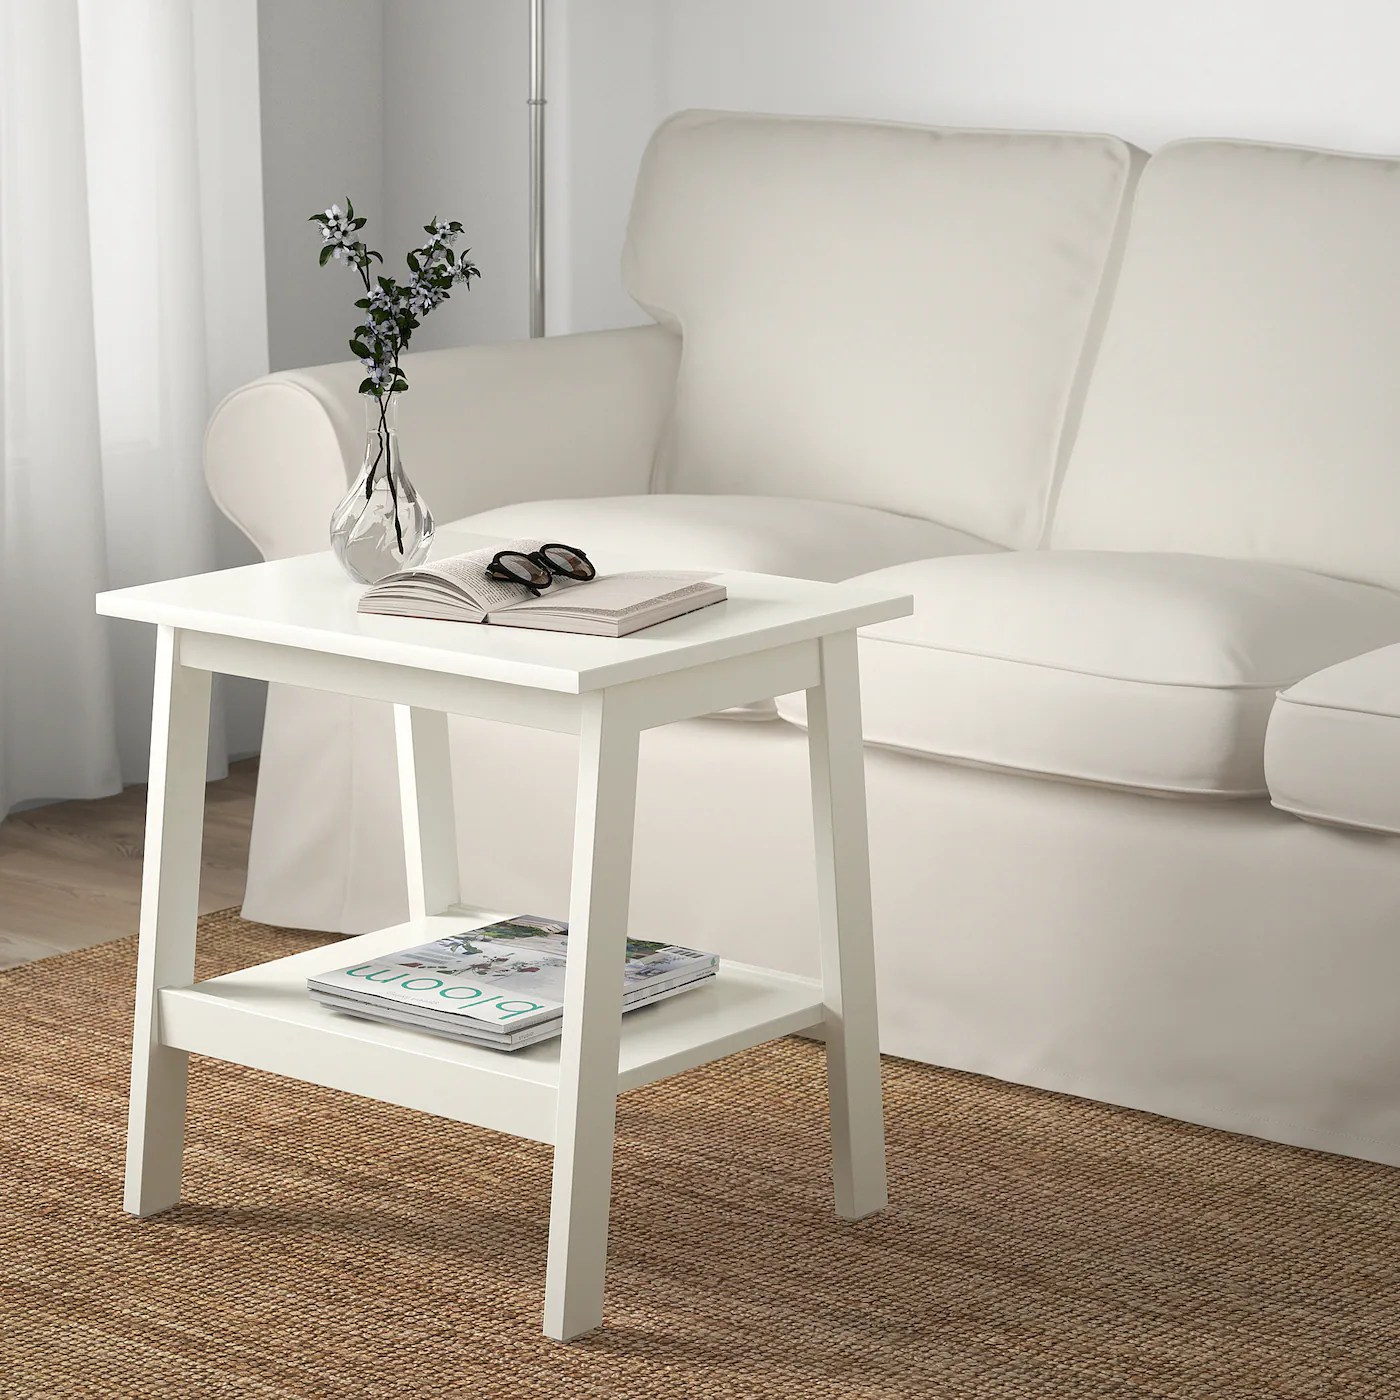 lunnarp side table white 21 5 8x17 3 4